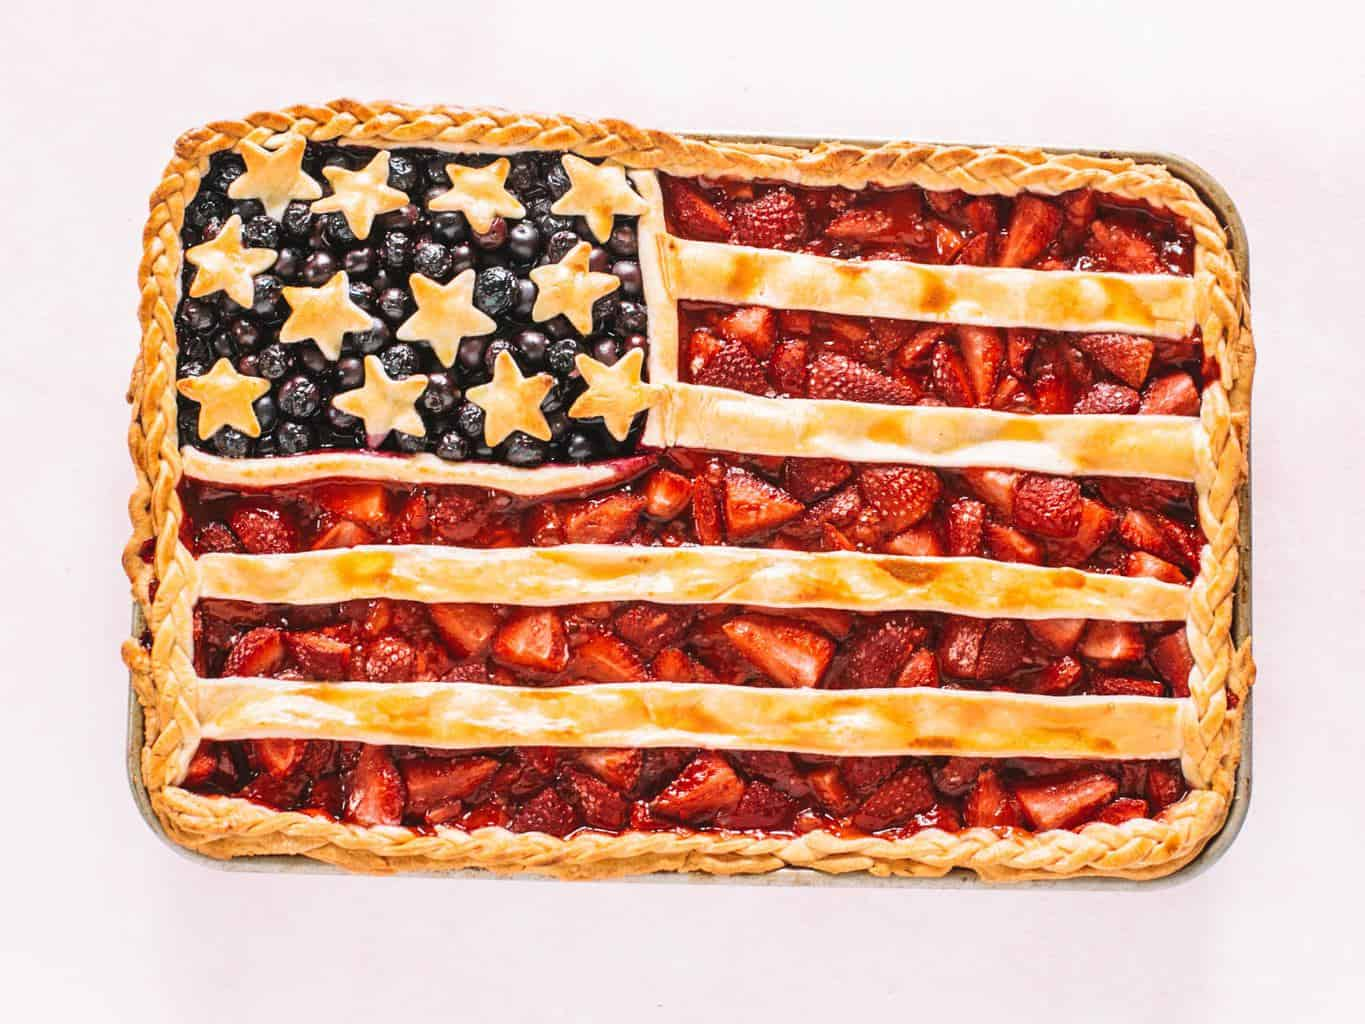 American flag pie made on a cookie sheet on a pink background.